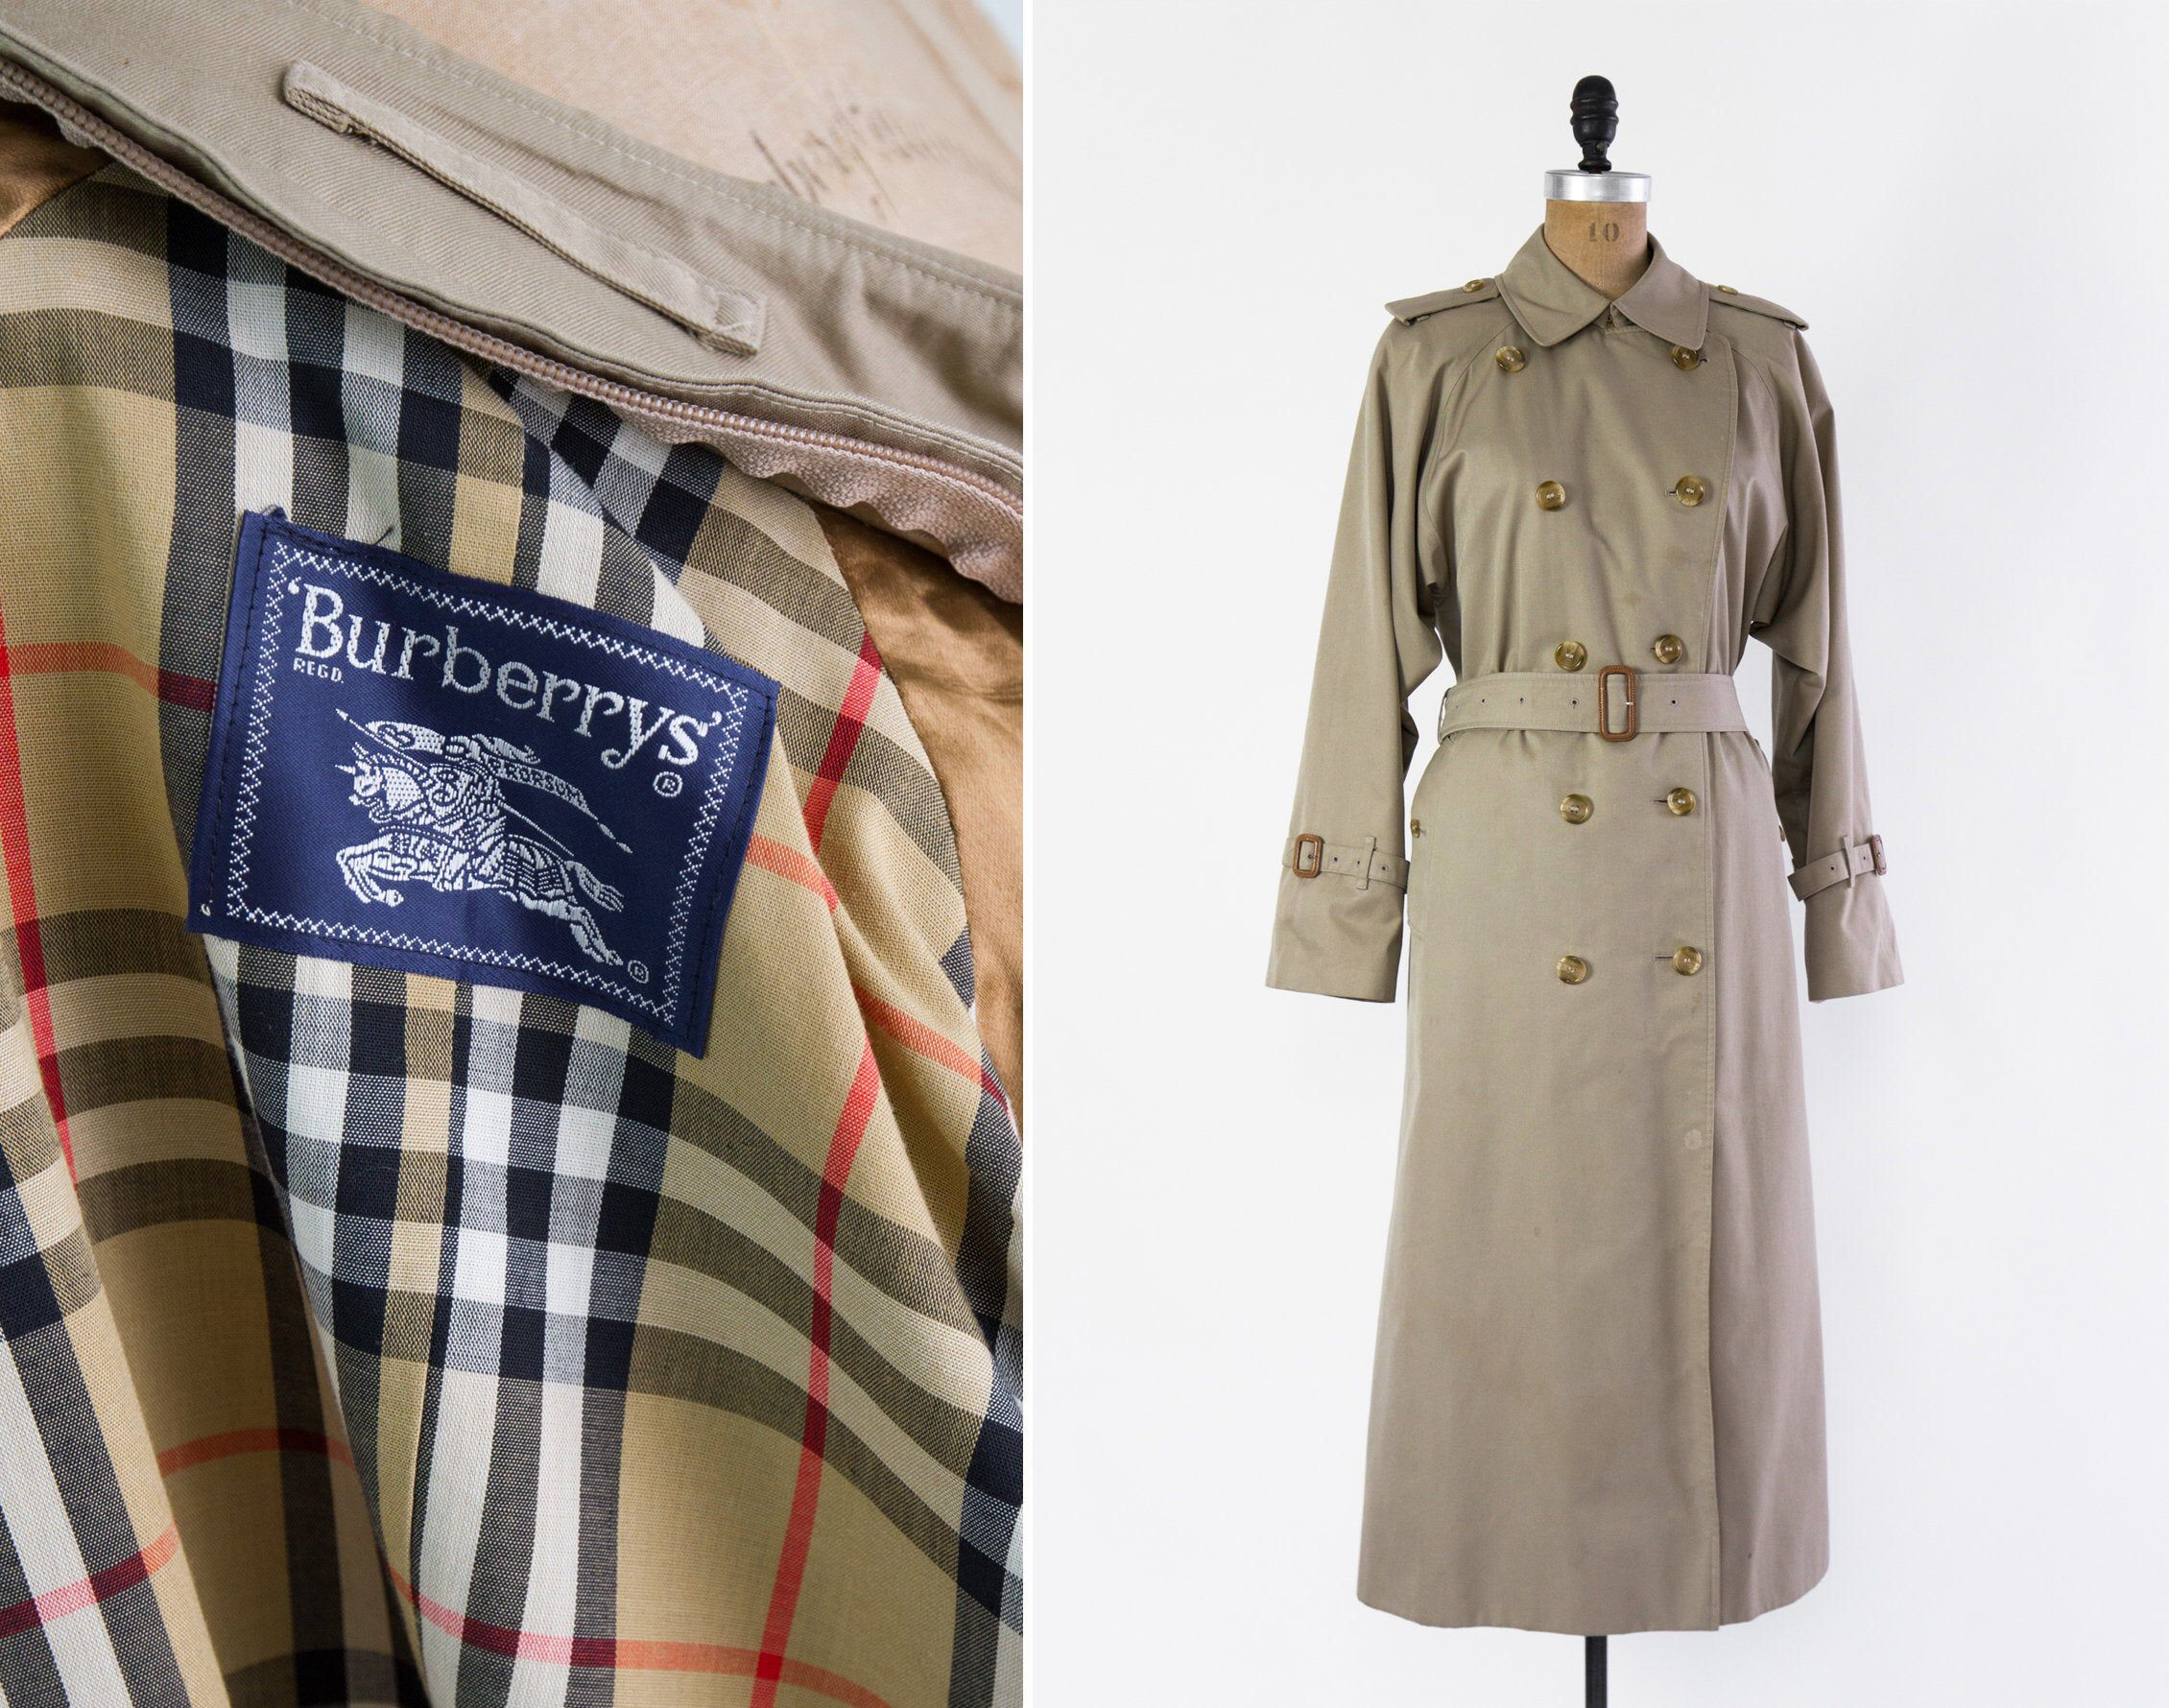 Vintage Burberry Trench Coat Burberry Trenchcoat Jacket Etsy Burberry Trench Coat Trench Coat Burberry Trench